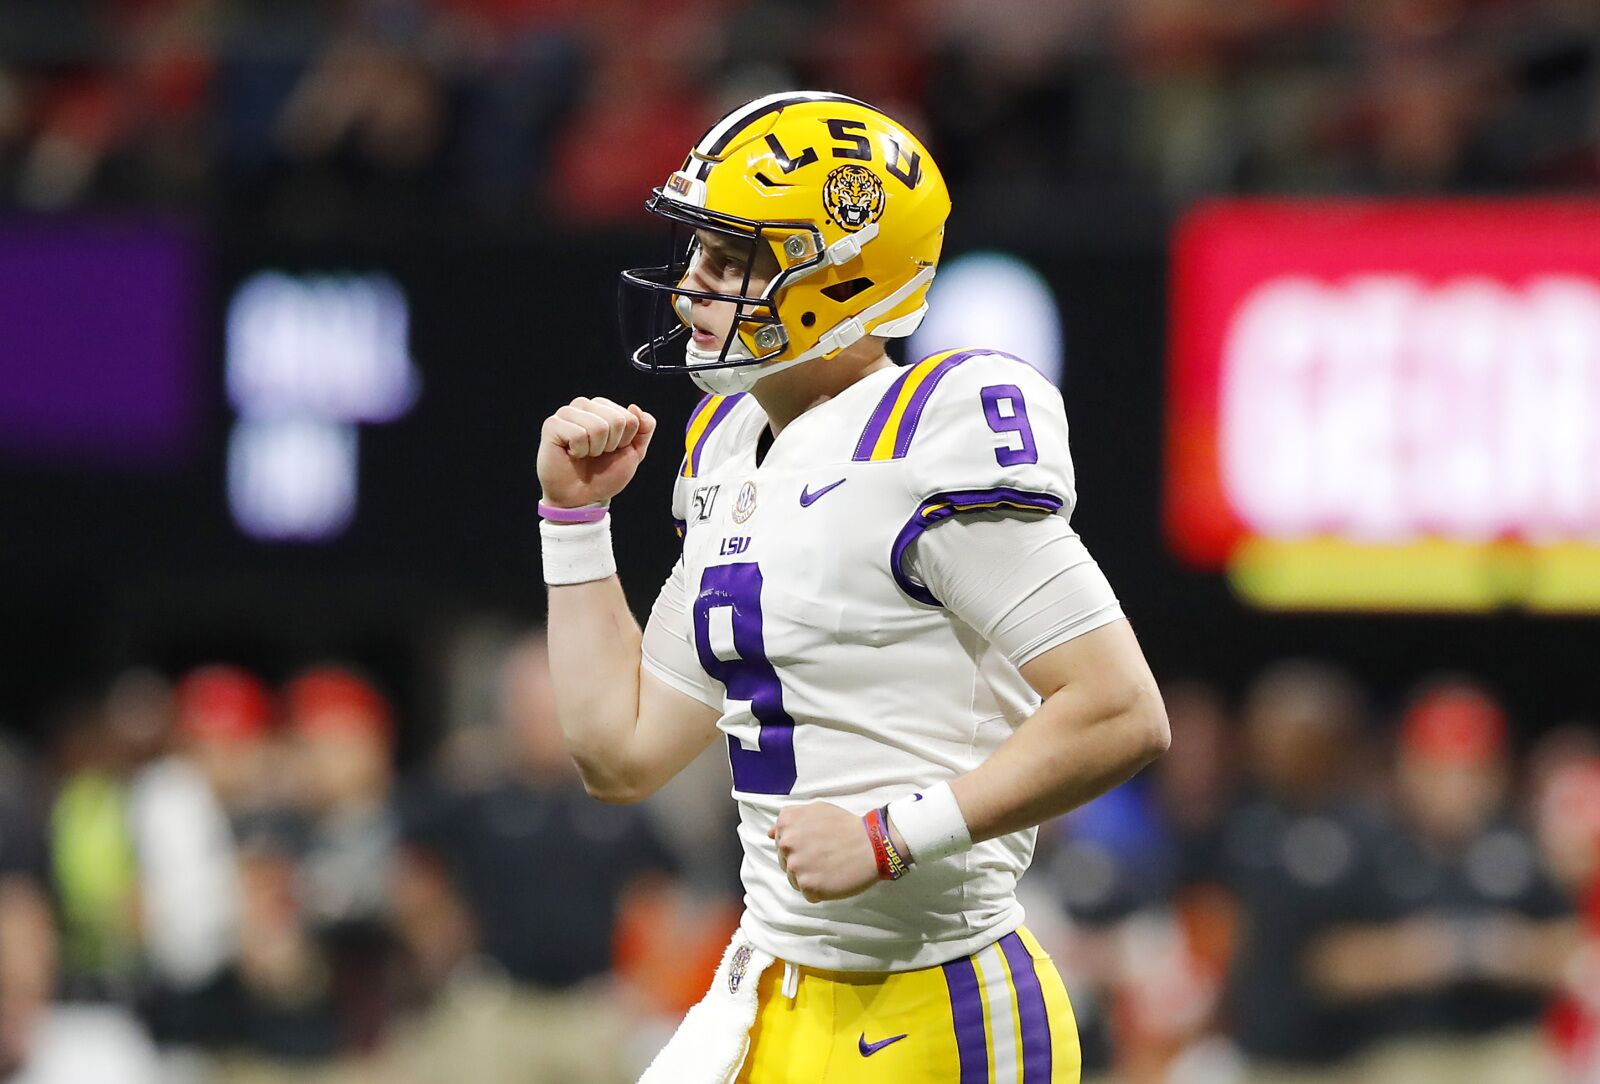 College Football Playoff 2019: Projected top 4 after Championship Week